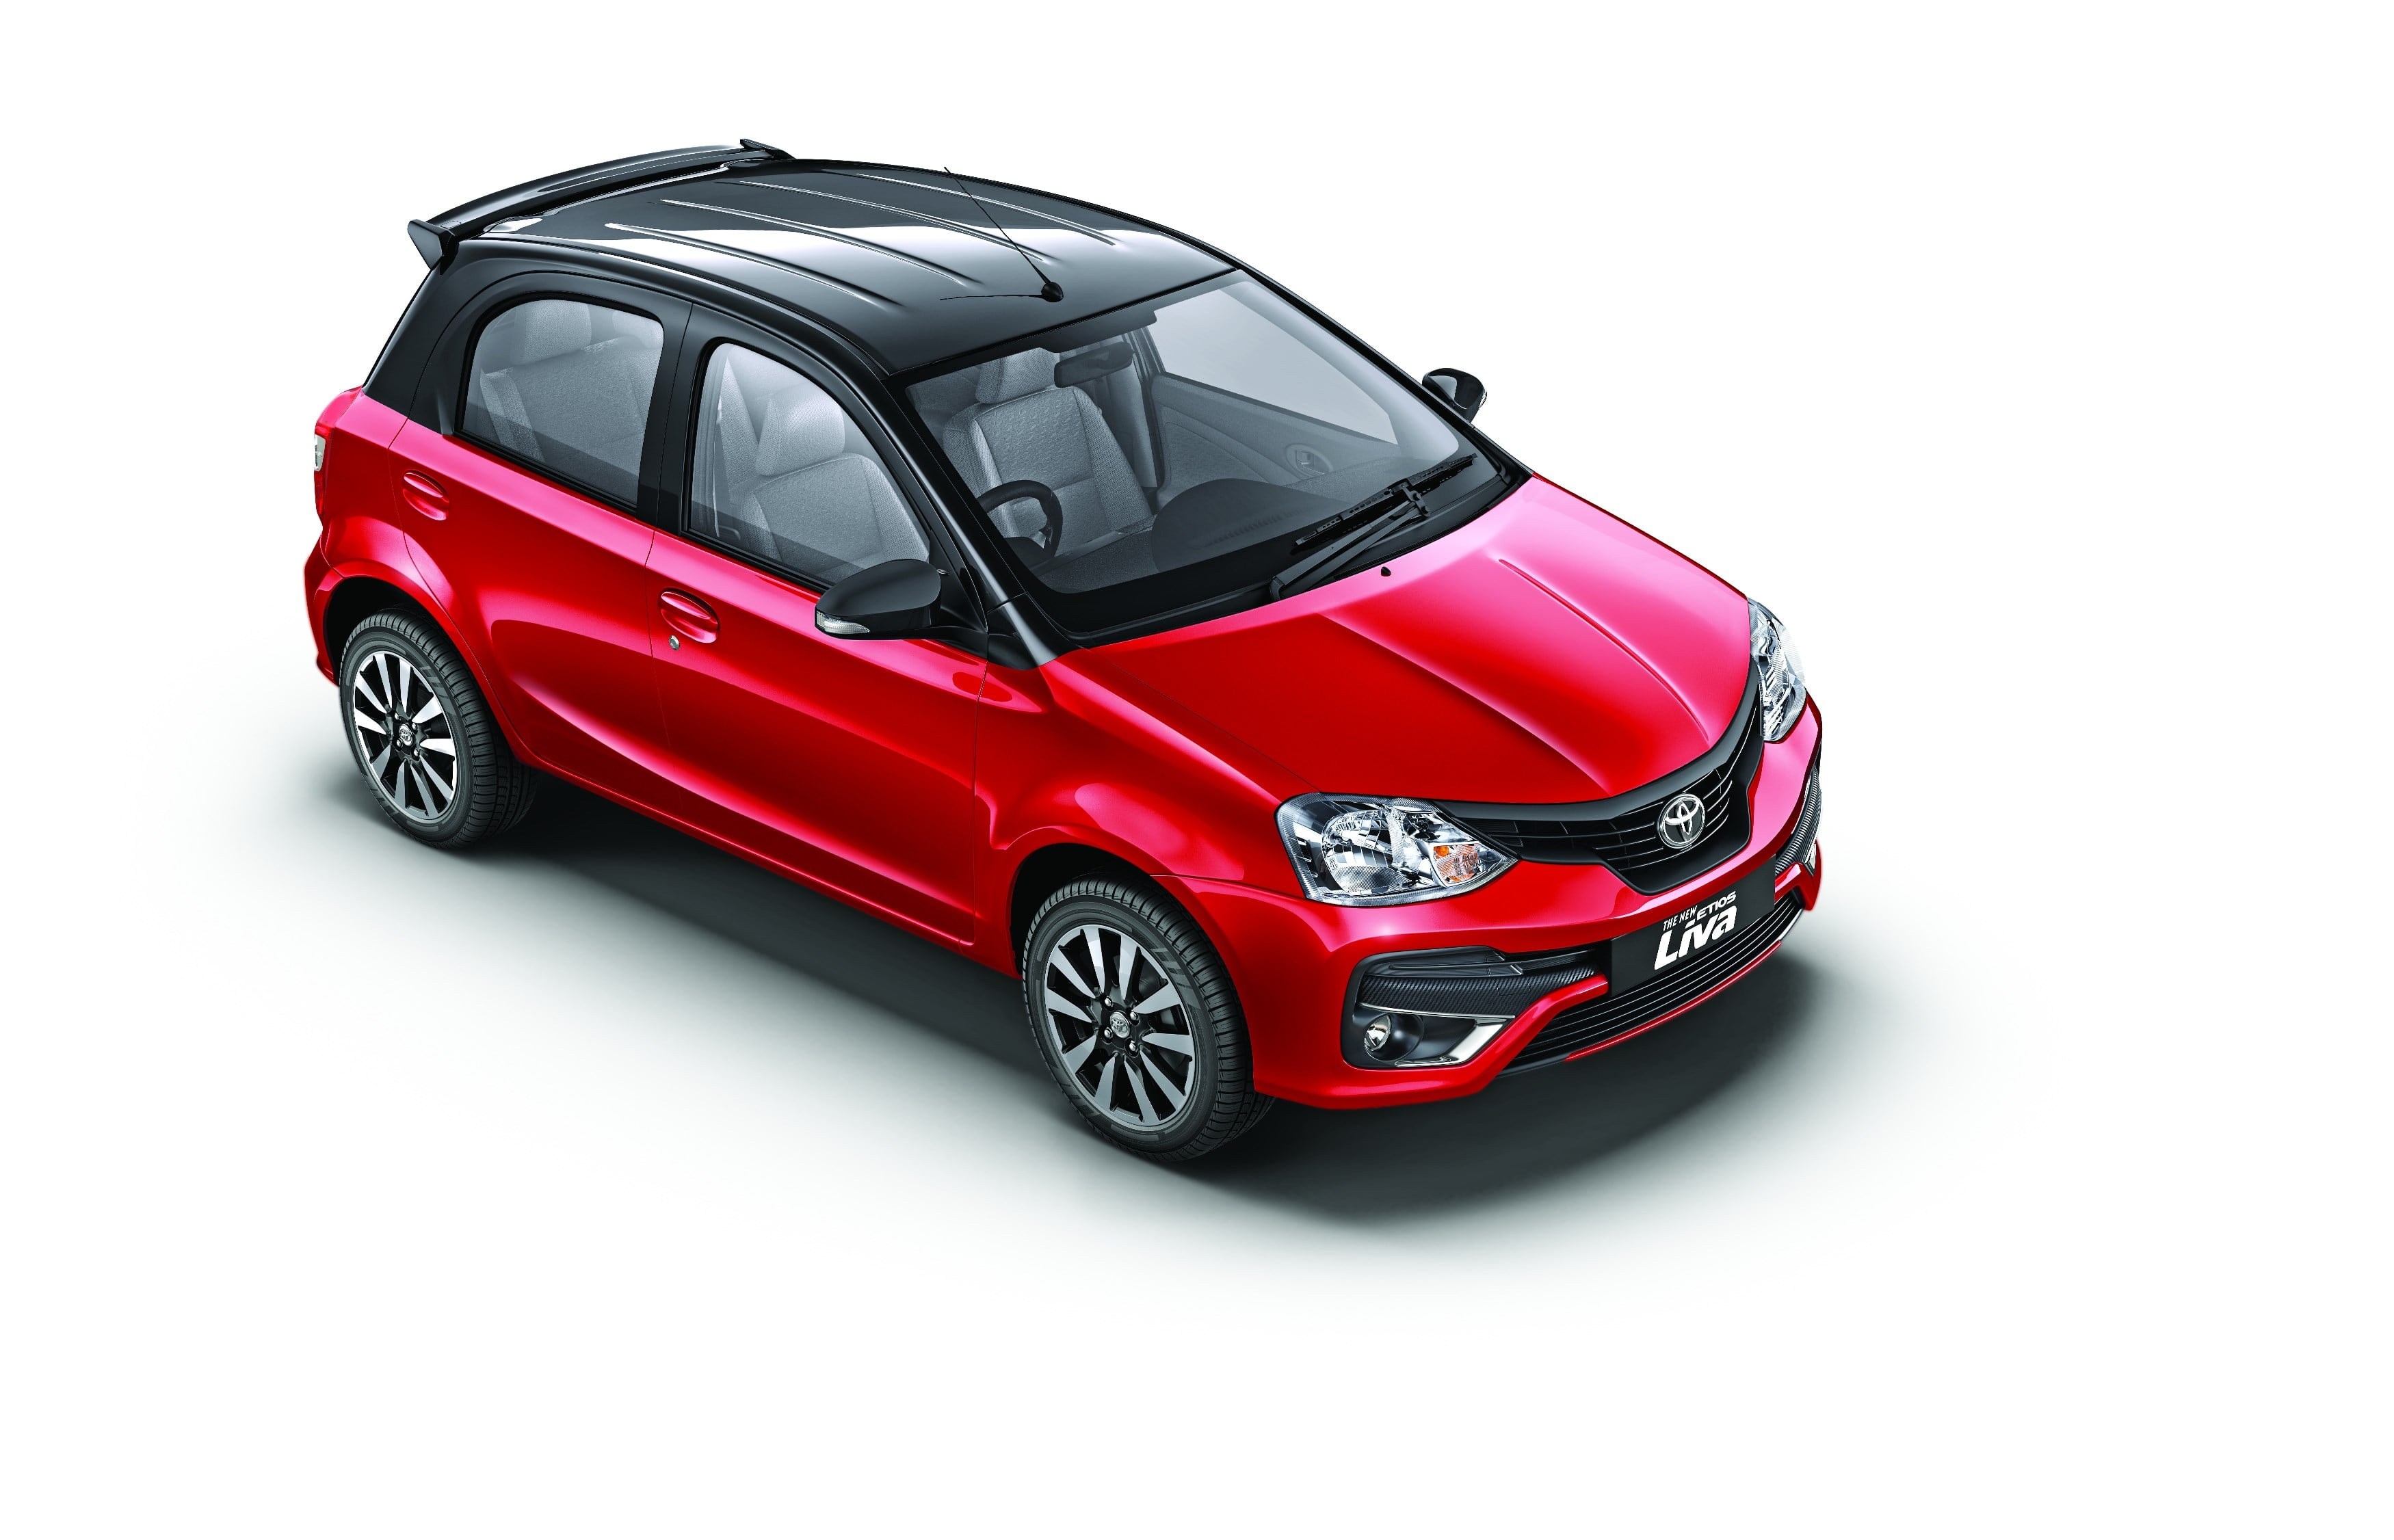 Toyota Etios Liva launched with new colours and additional features at INR 5.94 lakh